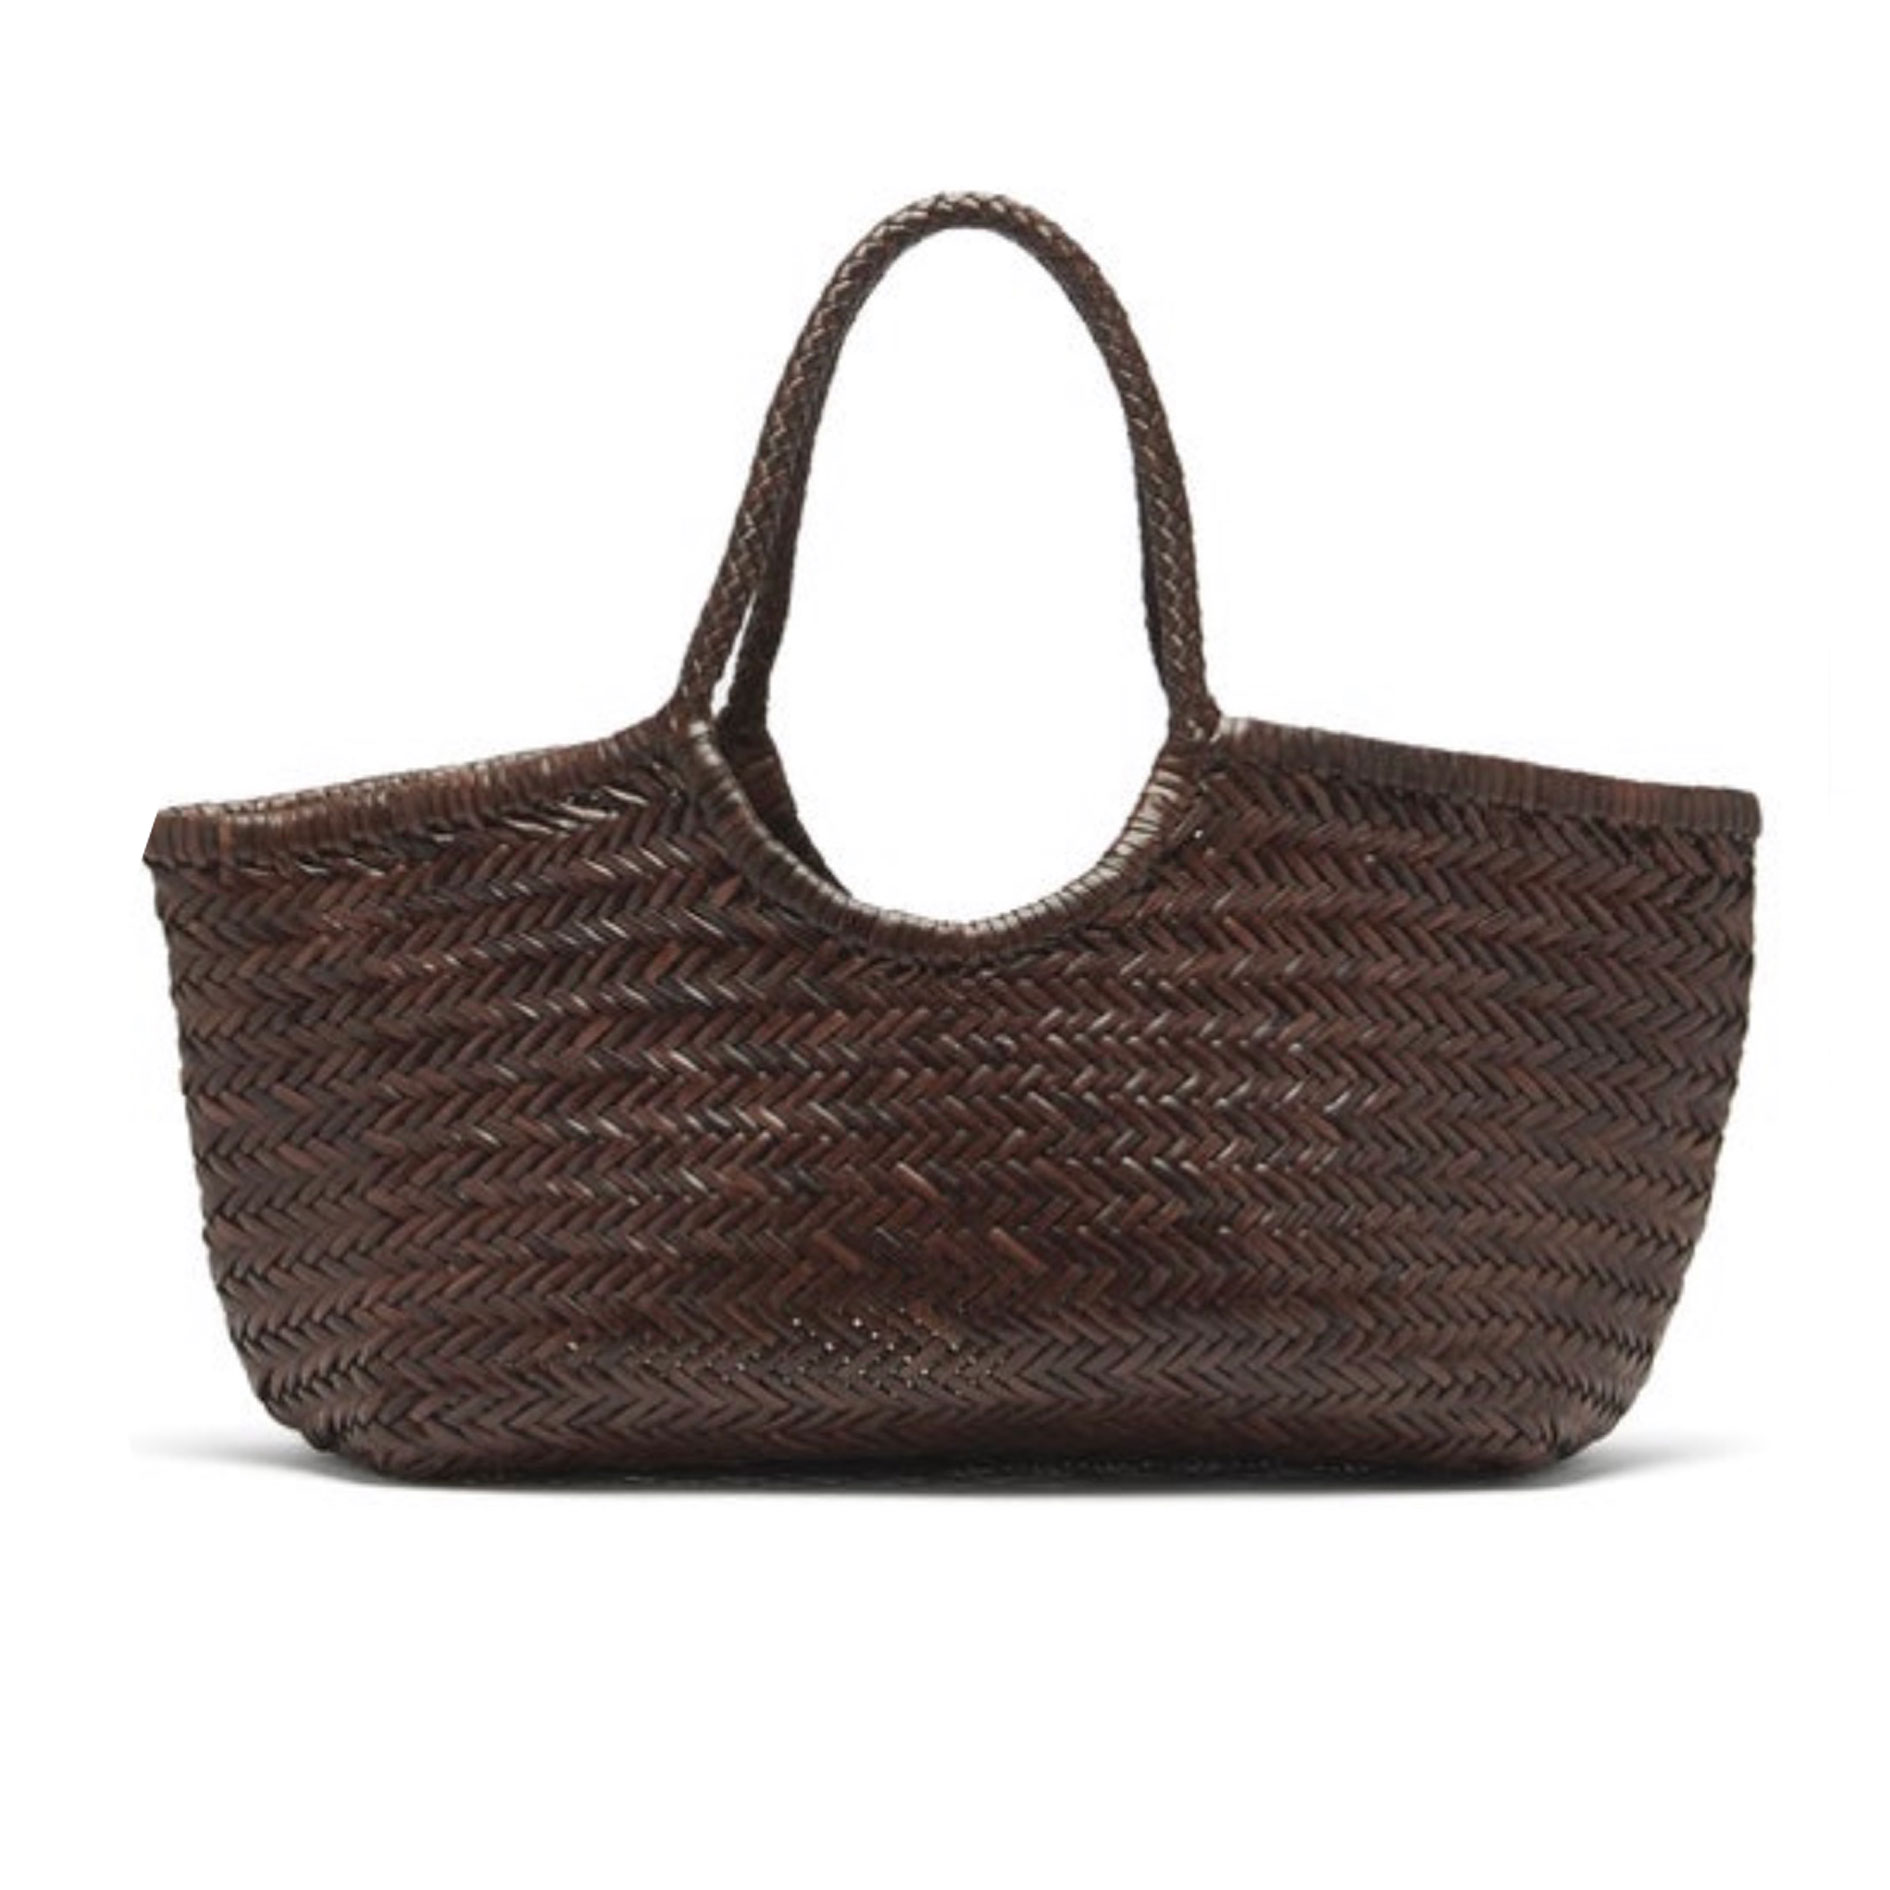 Sac shopping Nantucket cuir marron